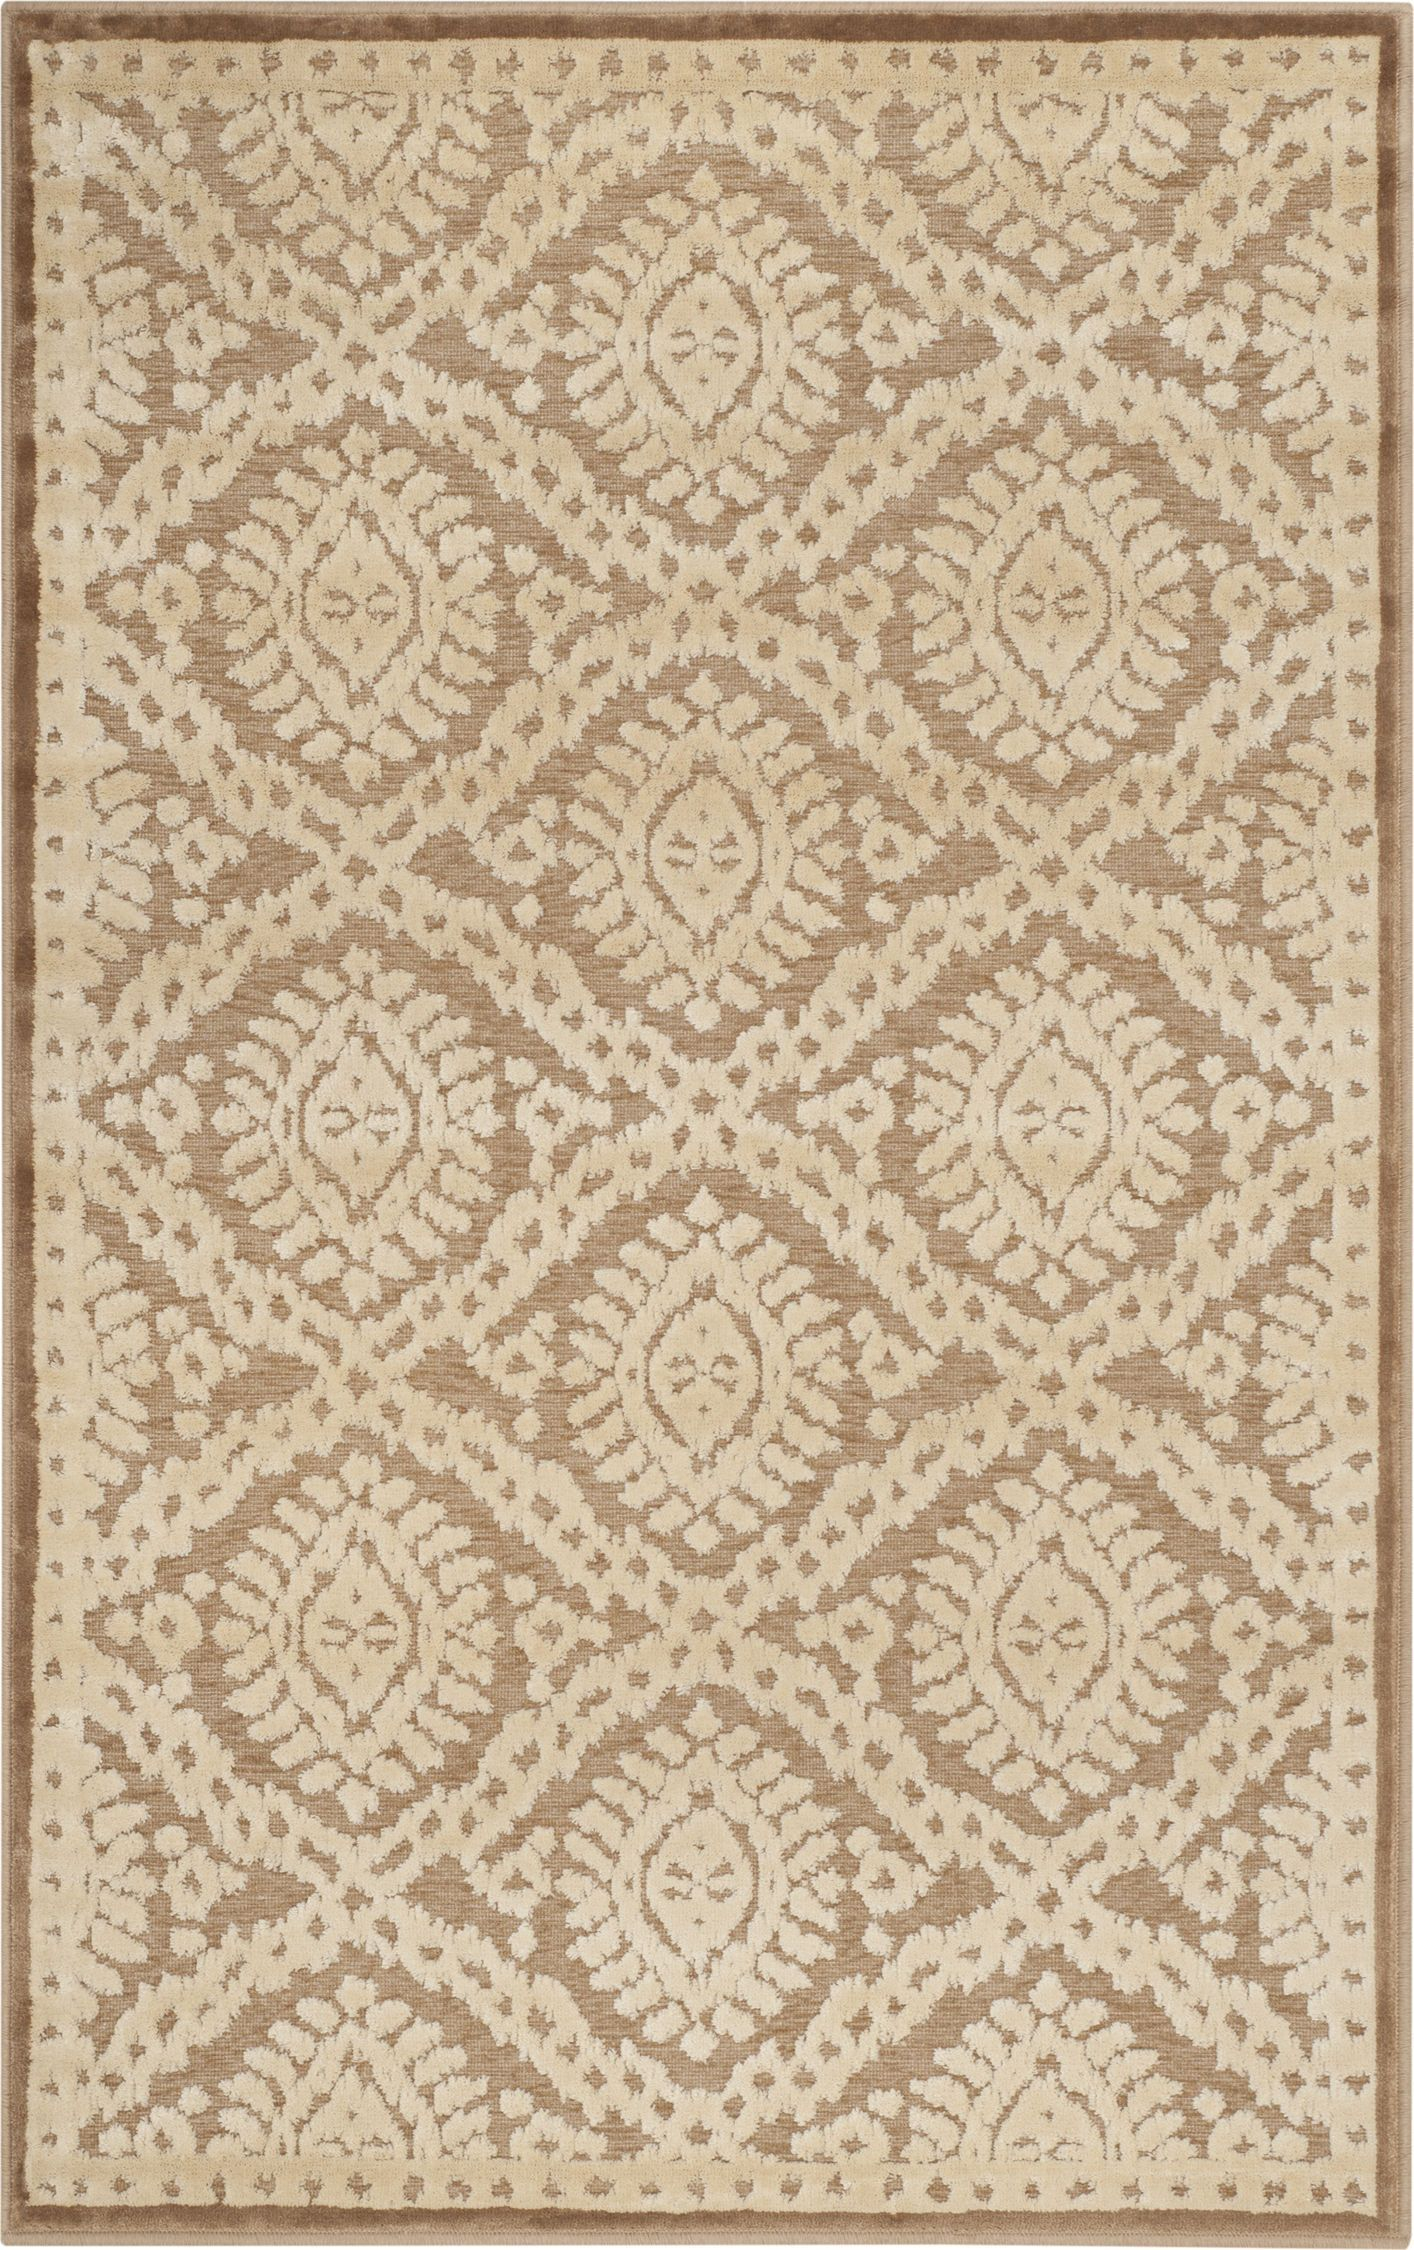 Latest Free Beige Carpet Tiles Thoughts Commercial Flooring Options Are Many But There Is Nothing Like Carpet Tiles Commercial Carpet Tile Beige Carpet Fre